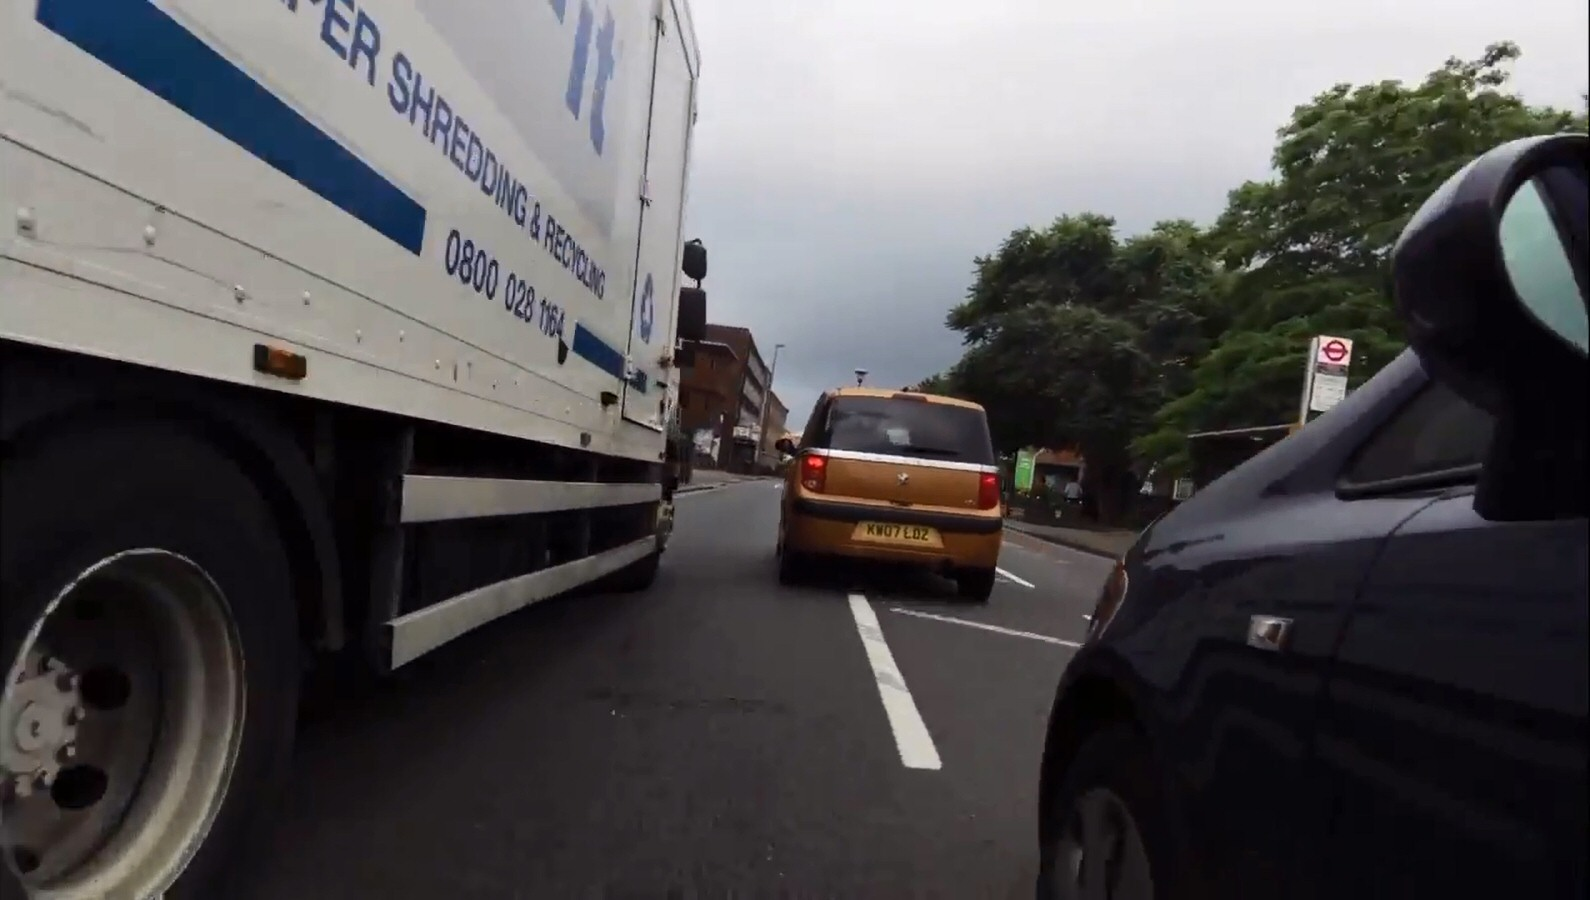 A close pass alongside a parked van.